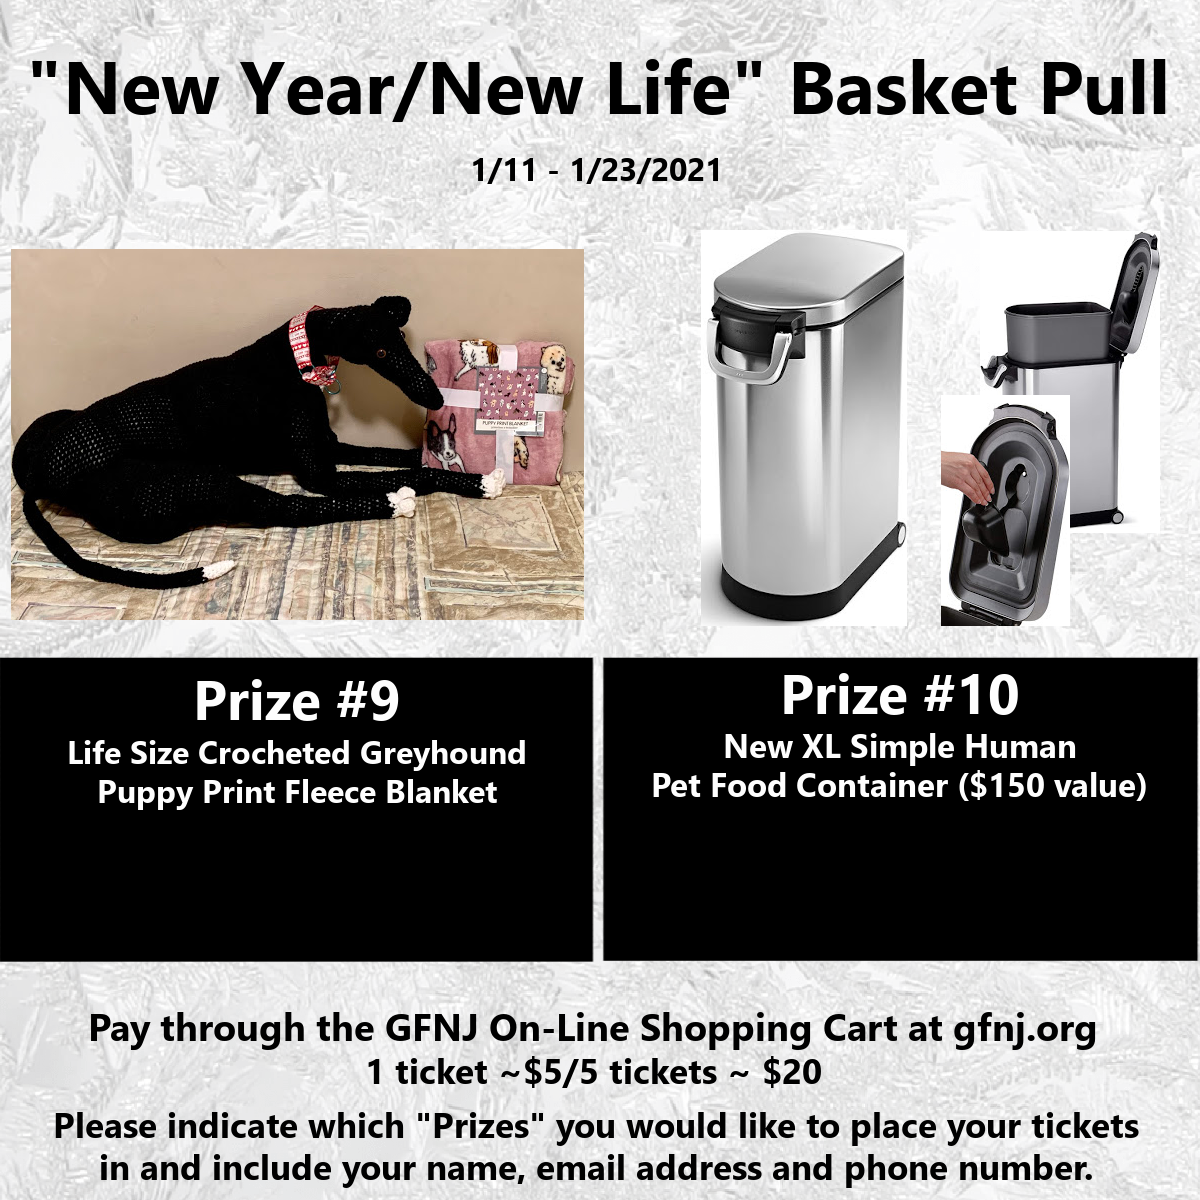 New Year/New Life Baskets 9/10